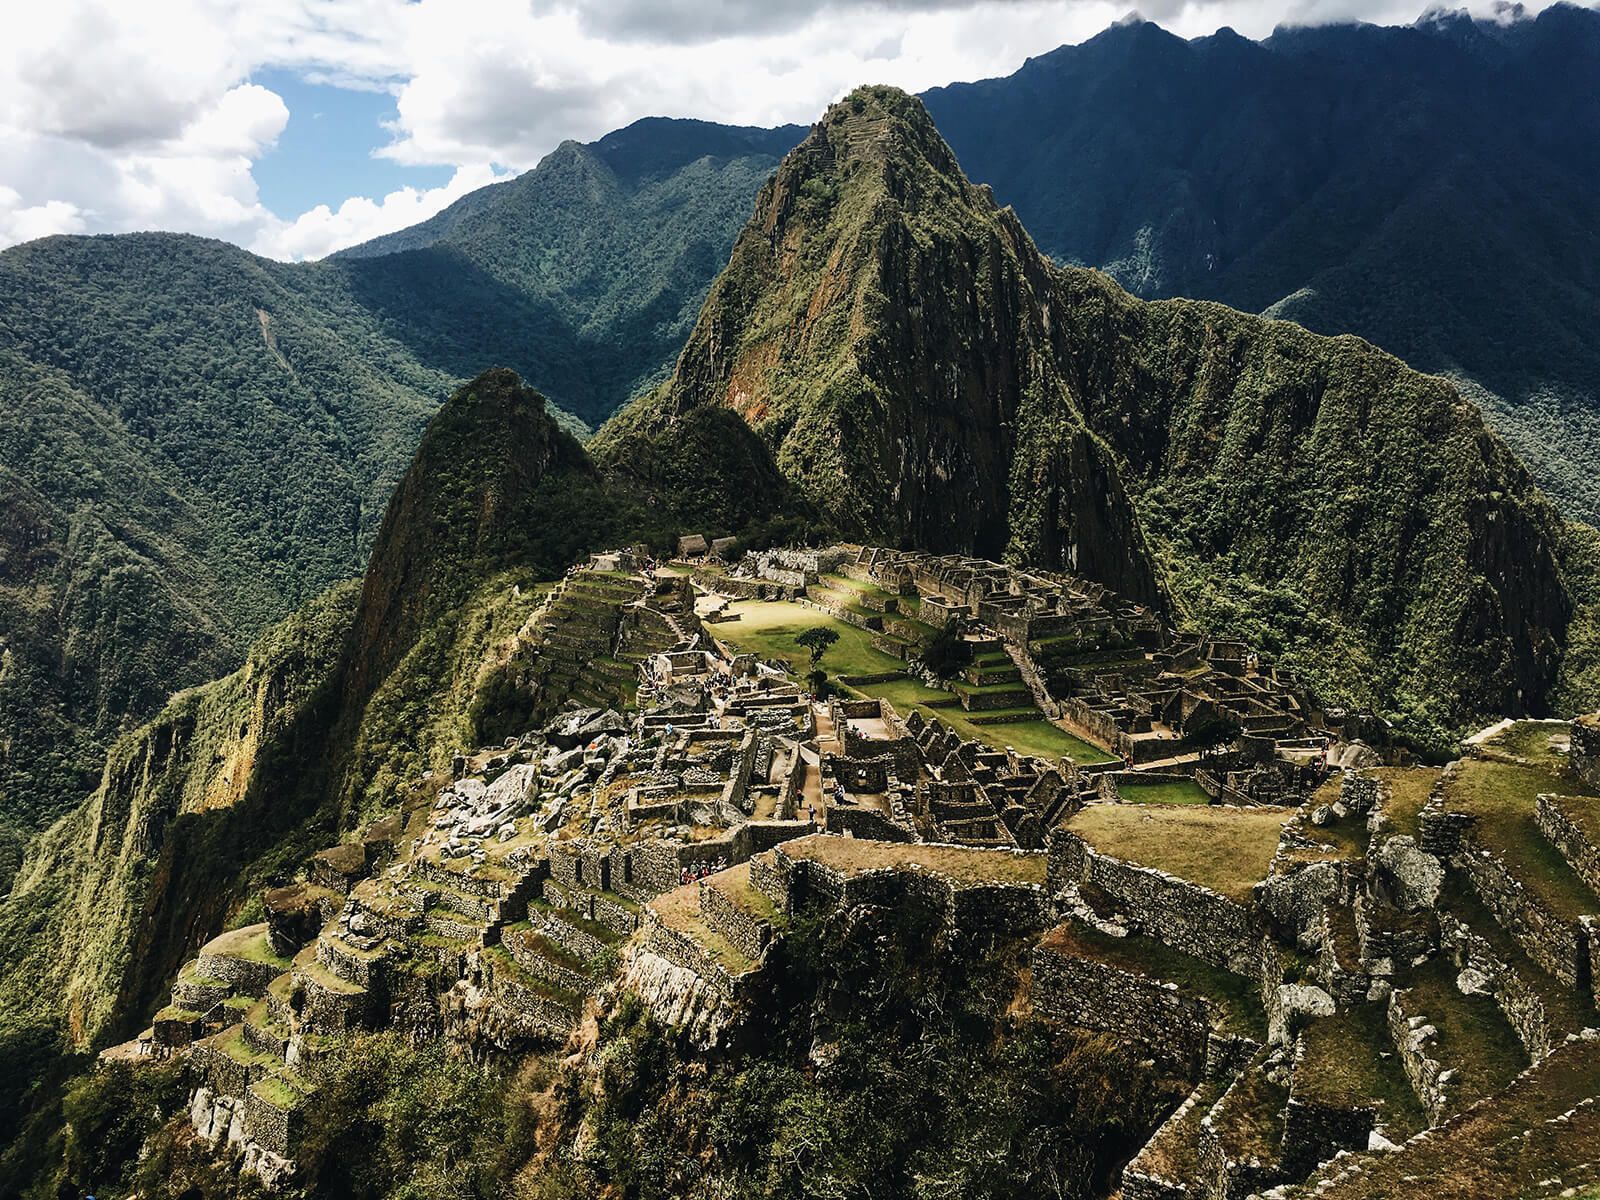 High up in the mountains of Peru lies Machu Picchu, lost city of the Inca, UNESCO World Heritage Site, and bucket list travel destination